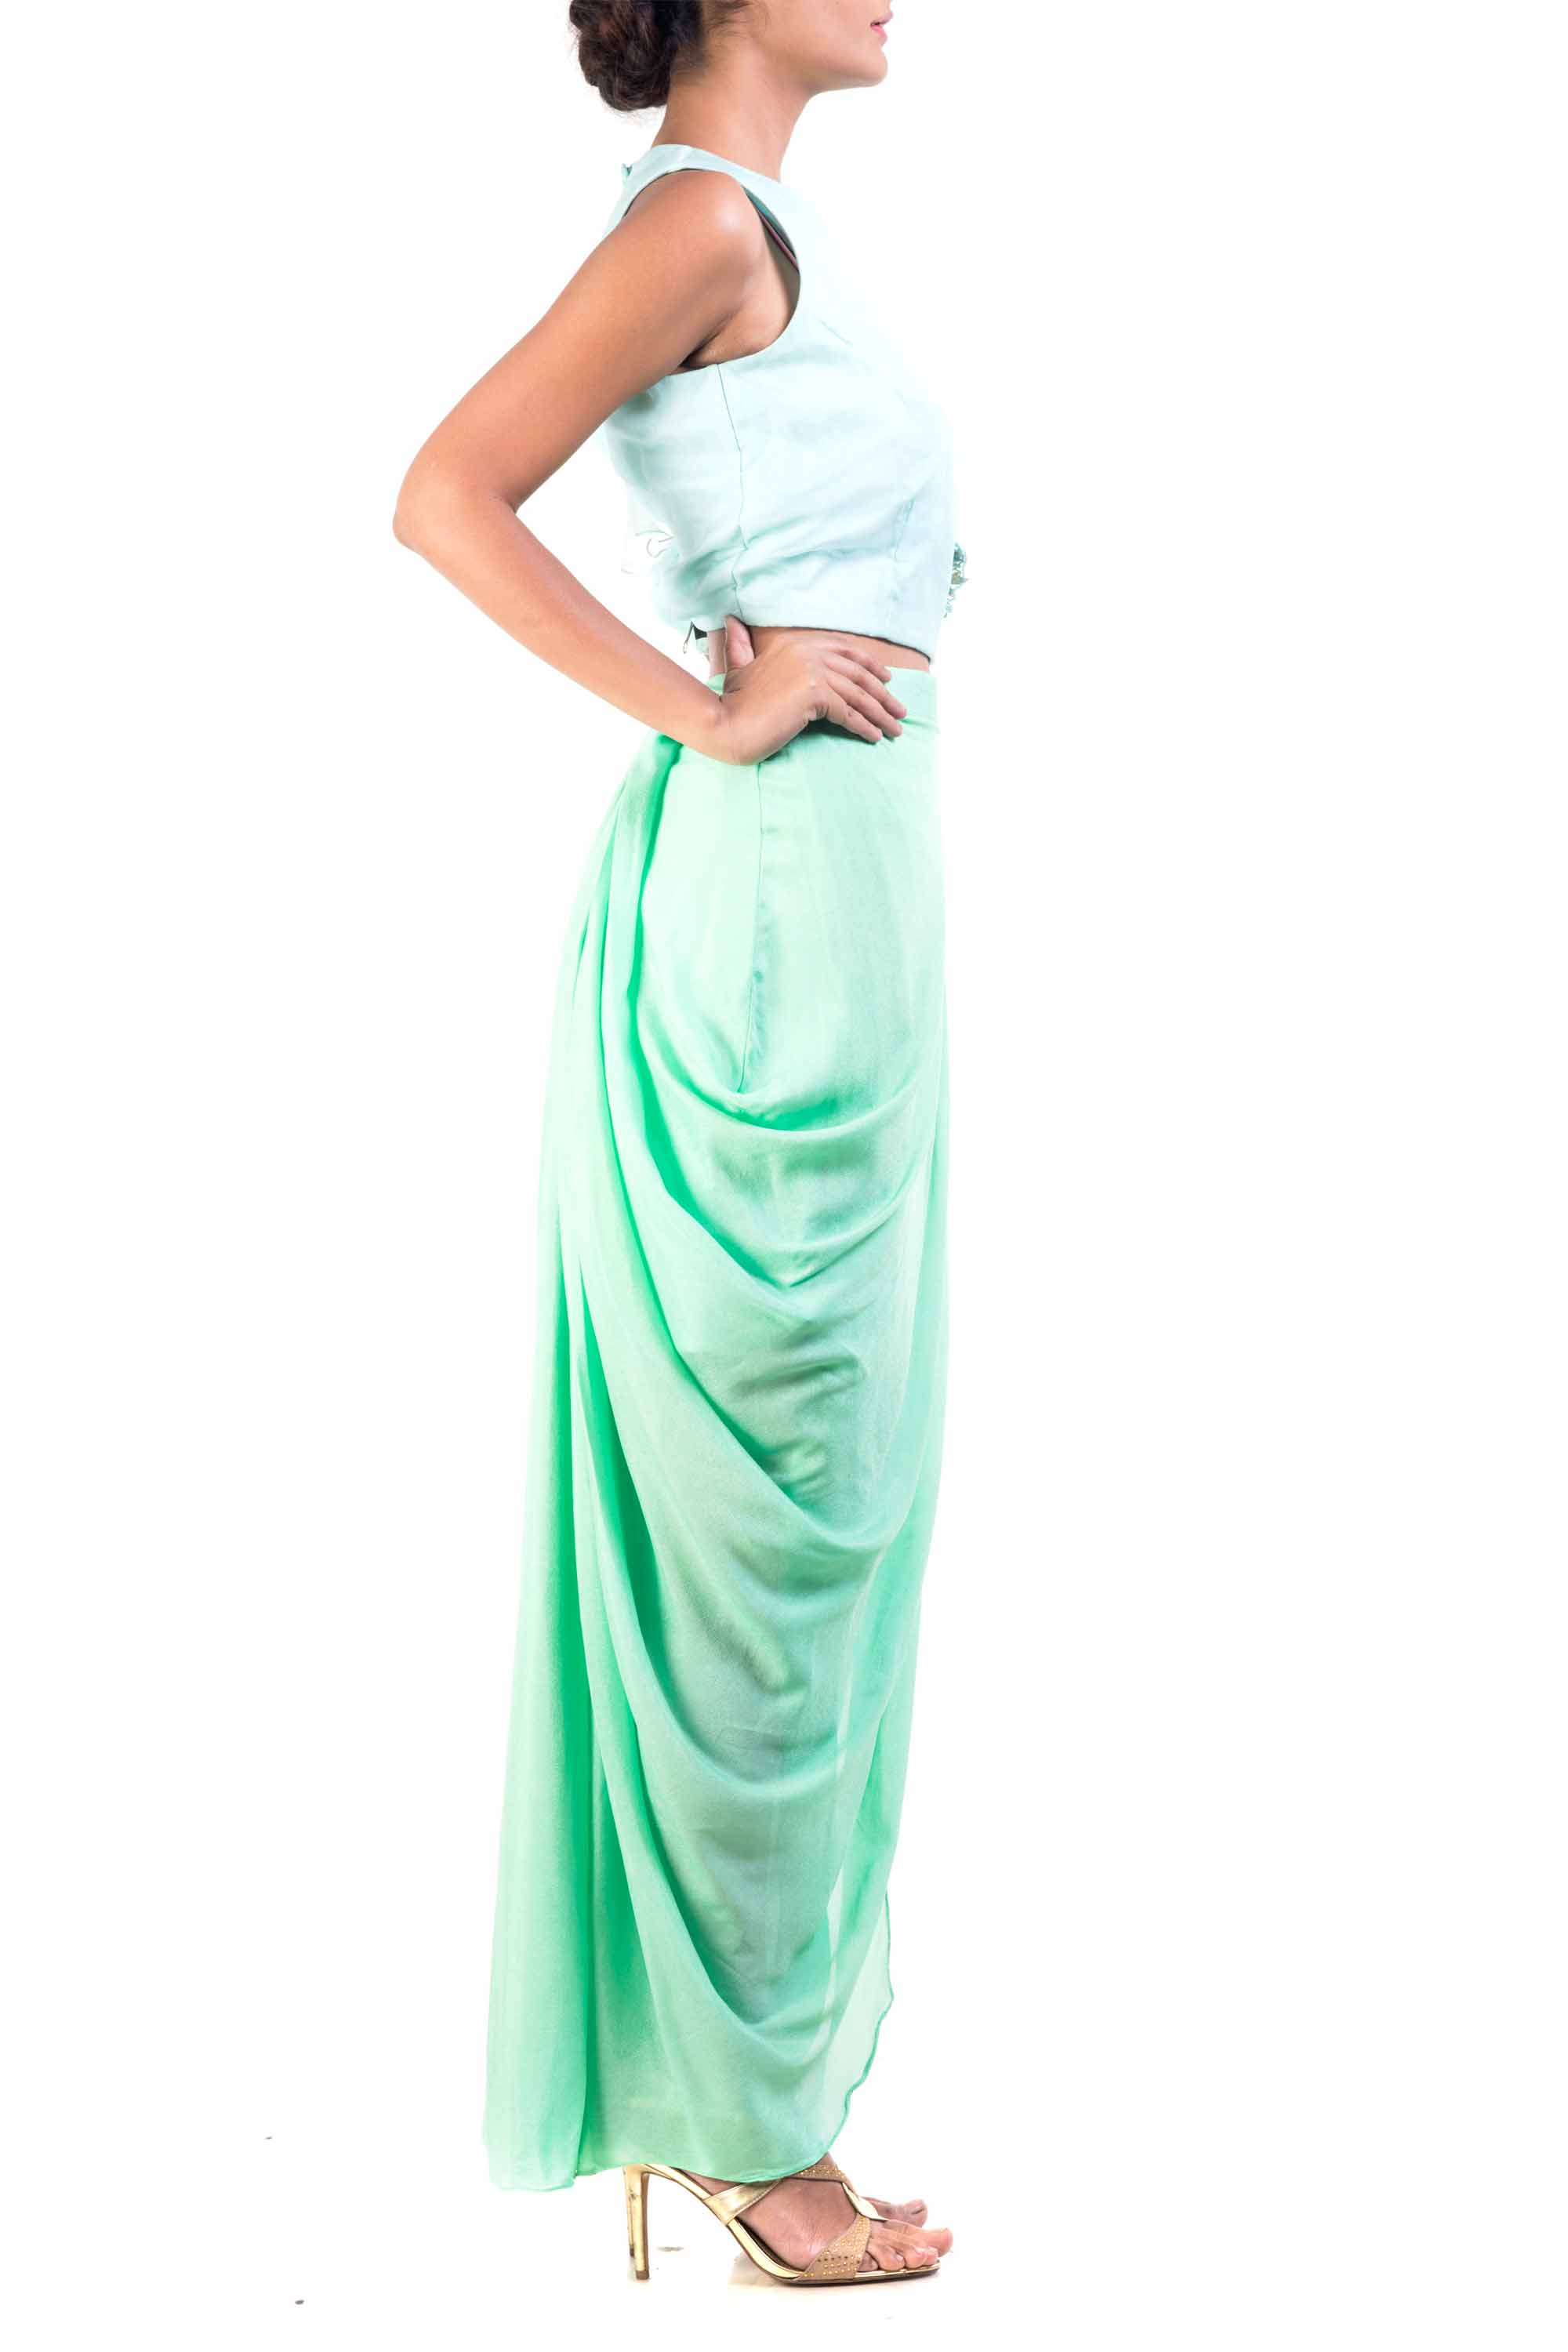 Sky Blue Cape-Cropper With Aqua Dhoti Wrap Skirt Side